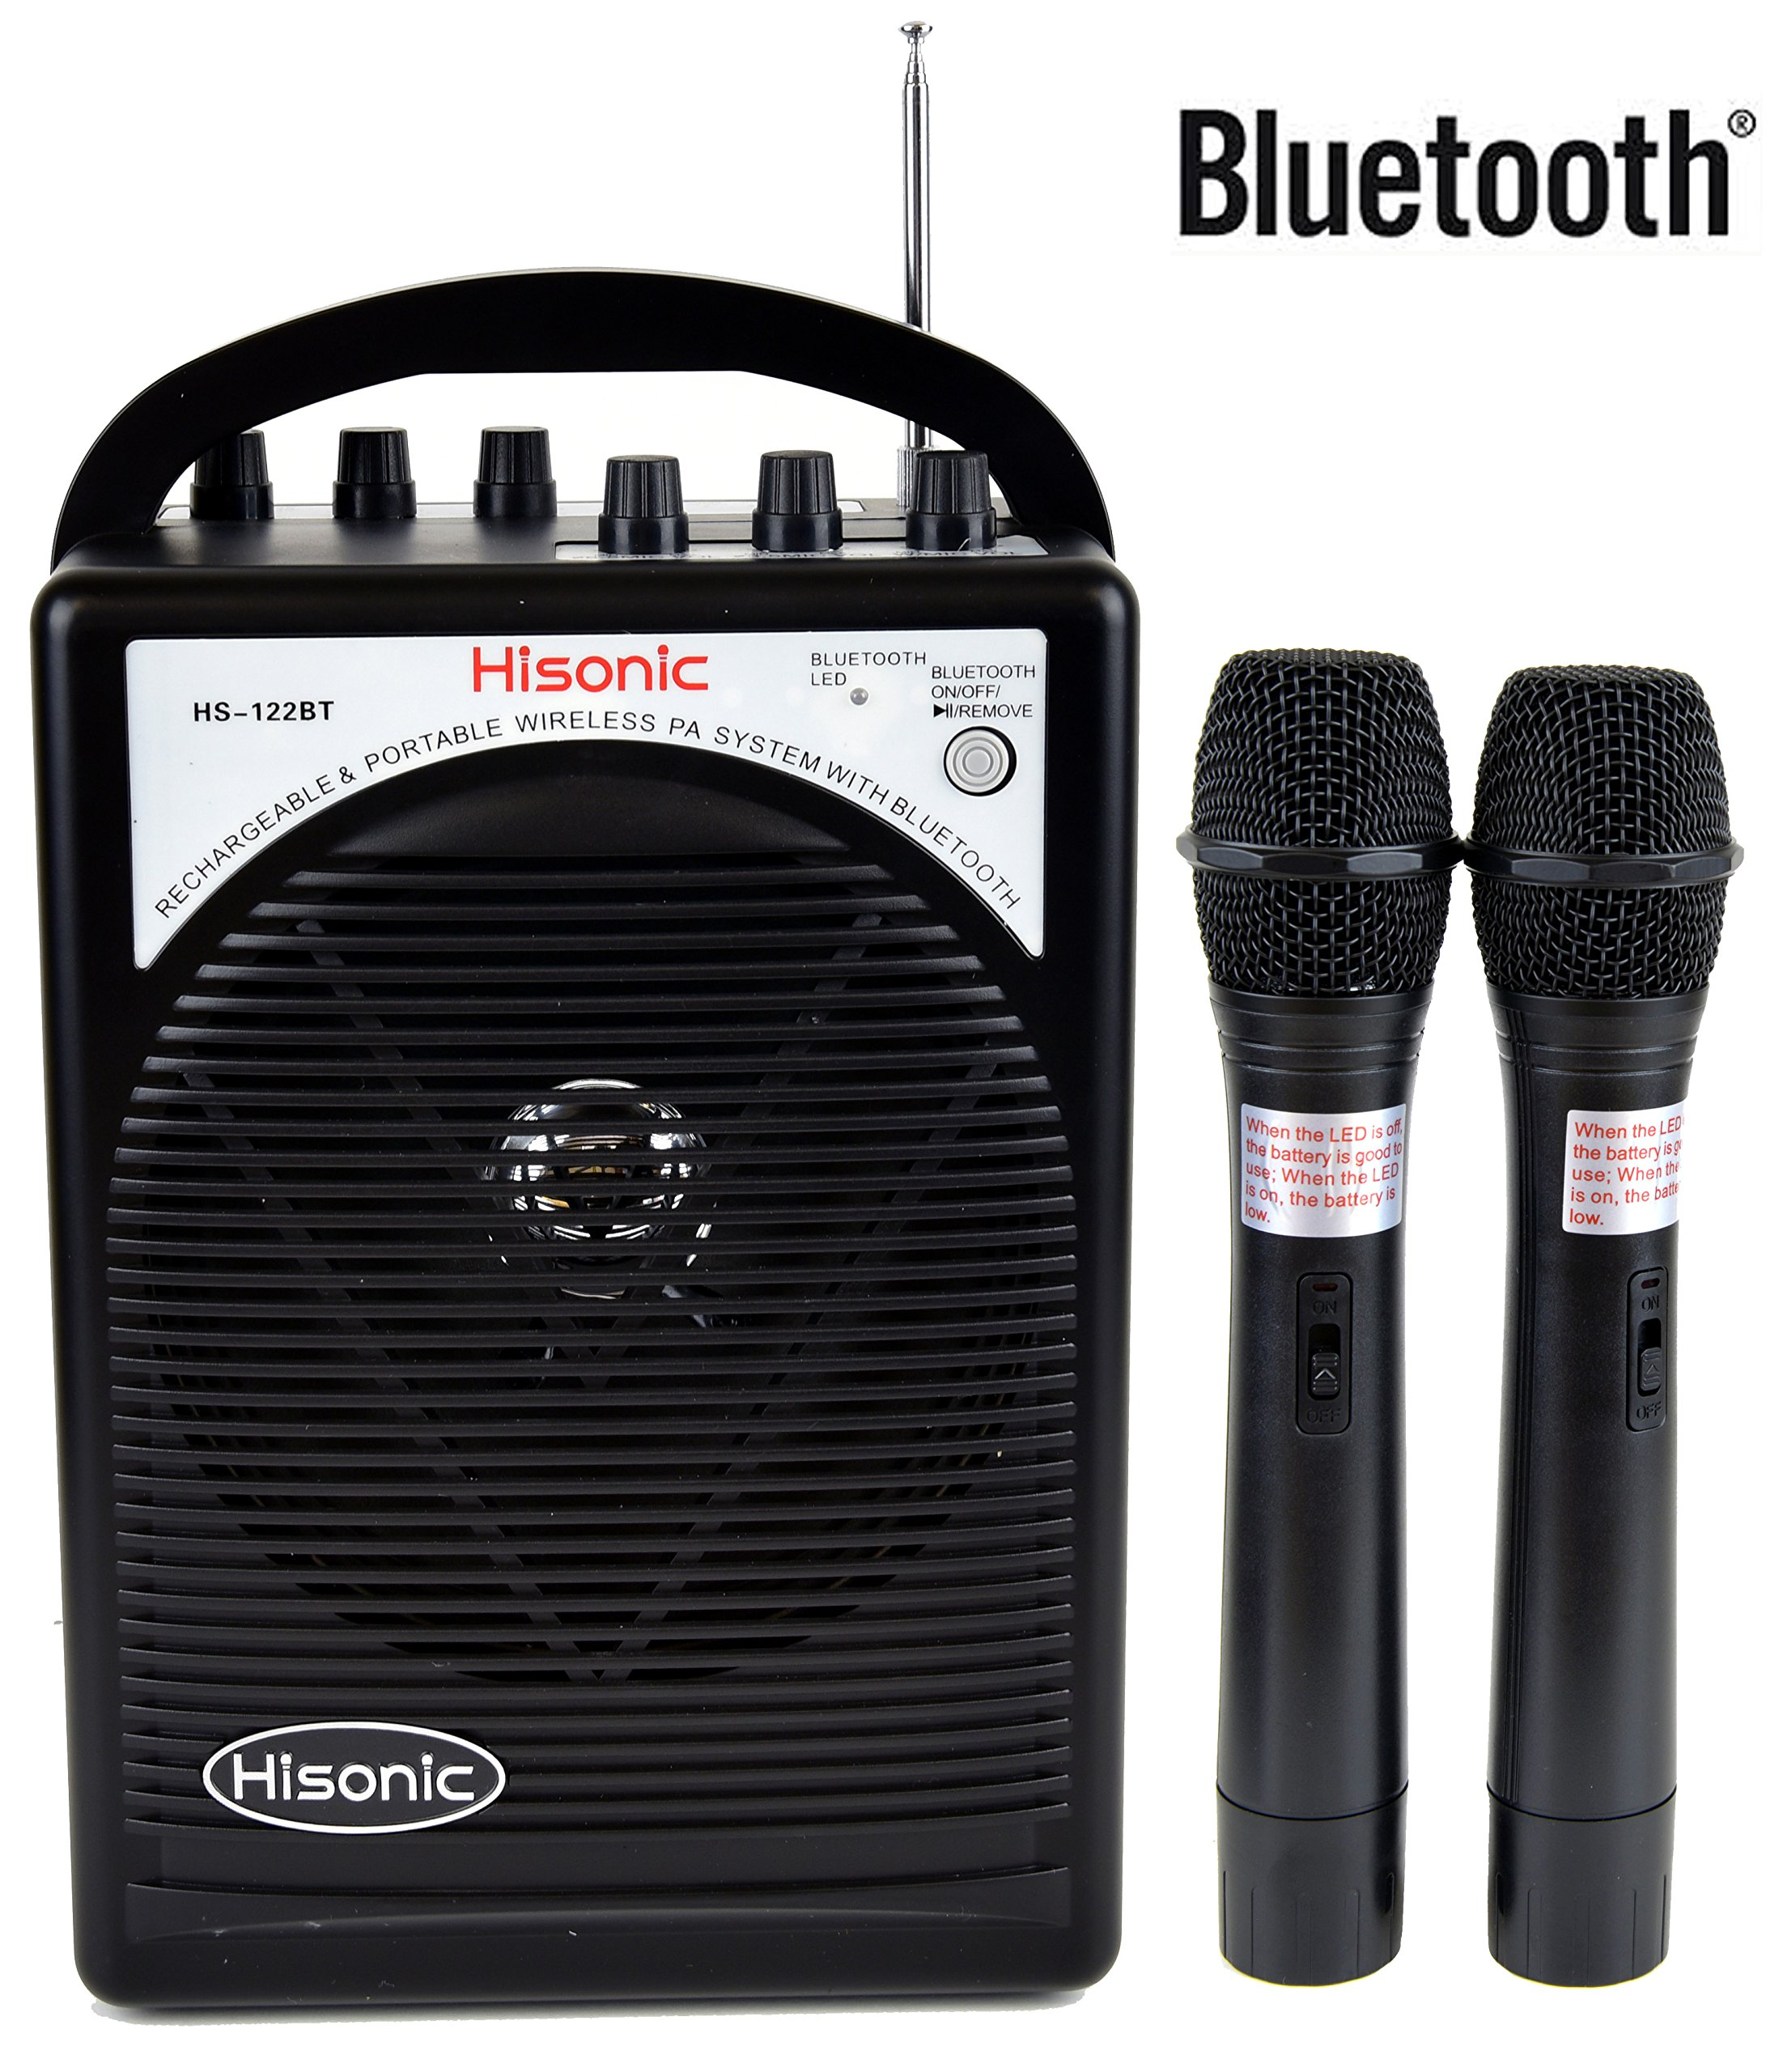 HISONIC HS122BT-HH Portable PA System with Dual Channel Wireless Microphones (Two handheld), Lithium Rechargeable Battery, Bluetooth Streaming Music From your Cell Phones, Black